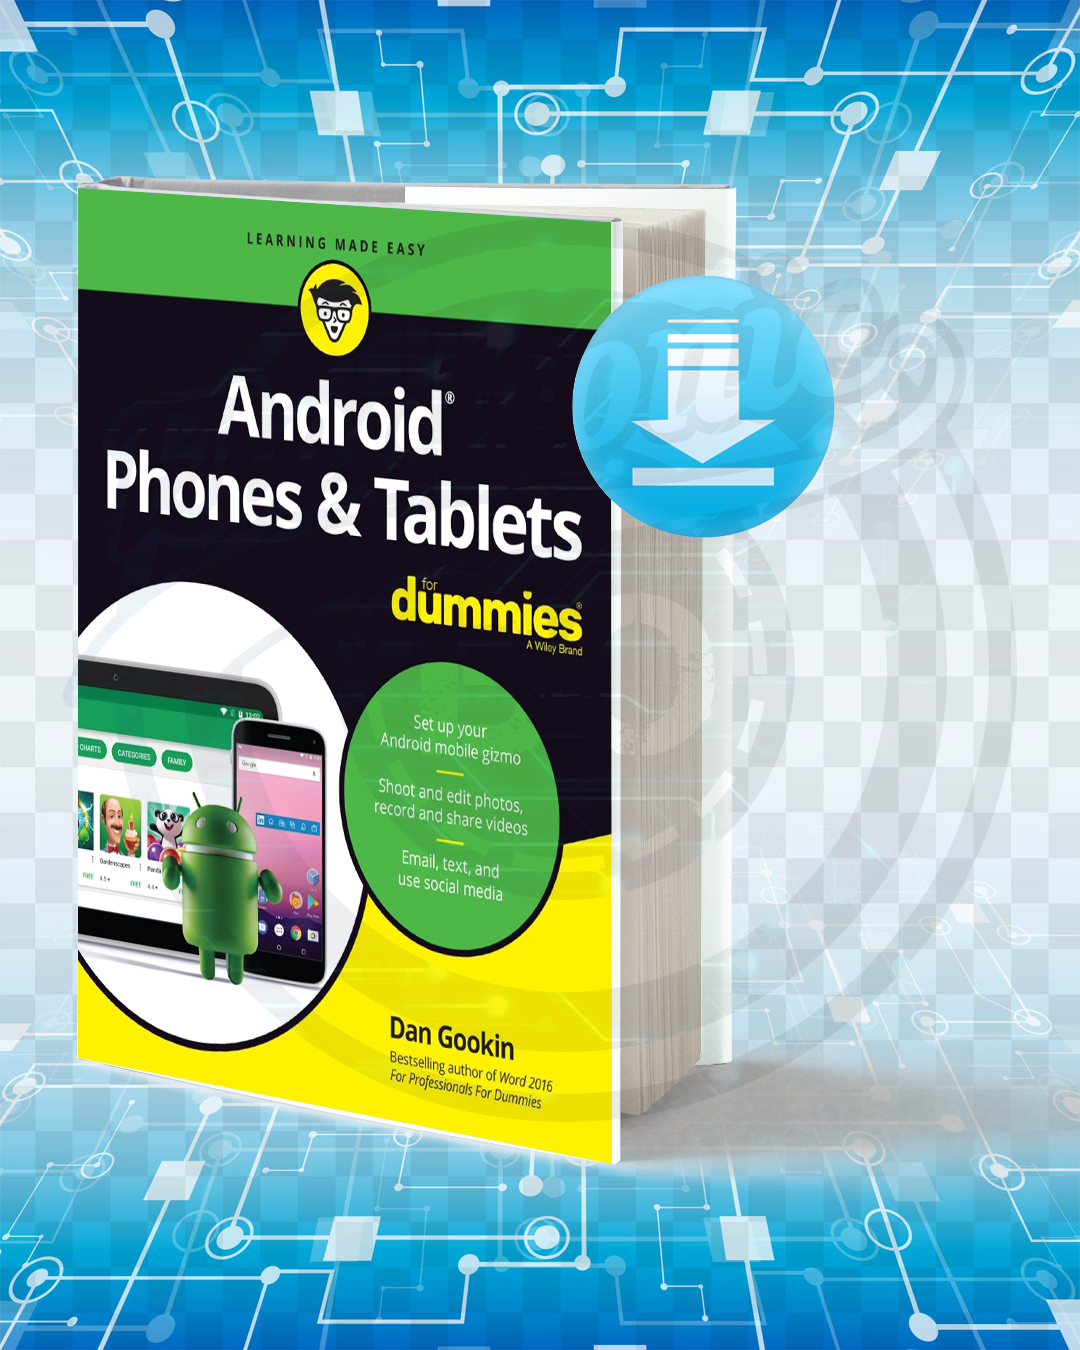 Free Book Android Phones & Tablets For Dummies pdf.